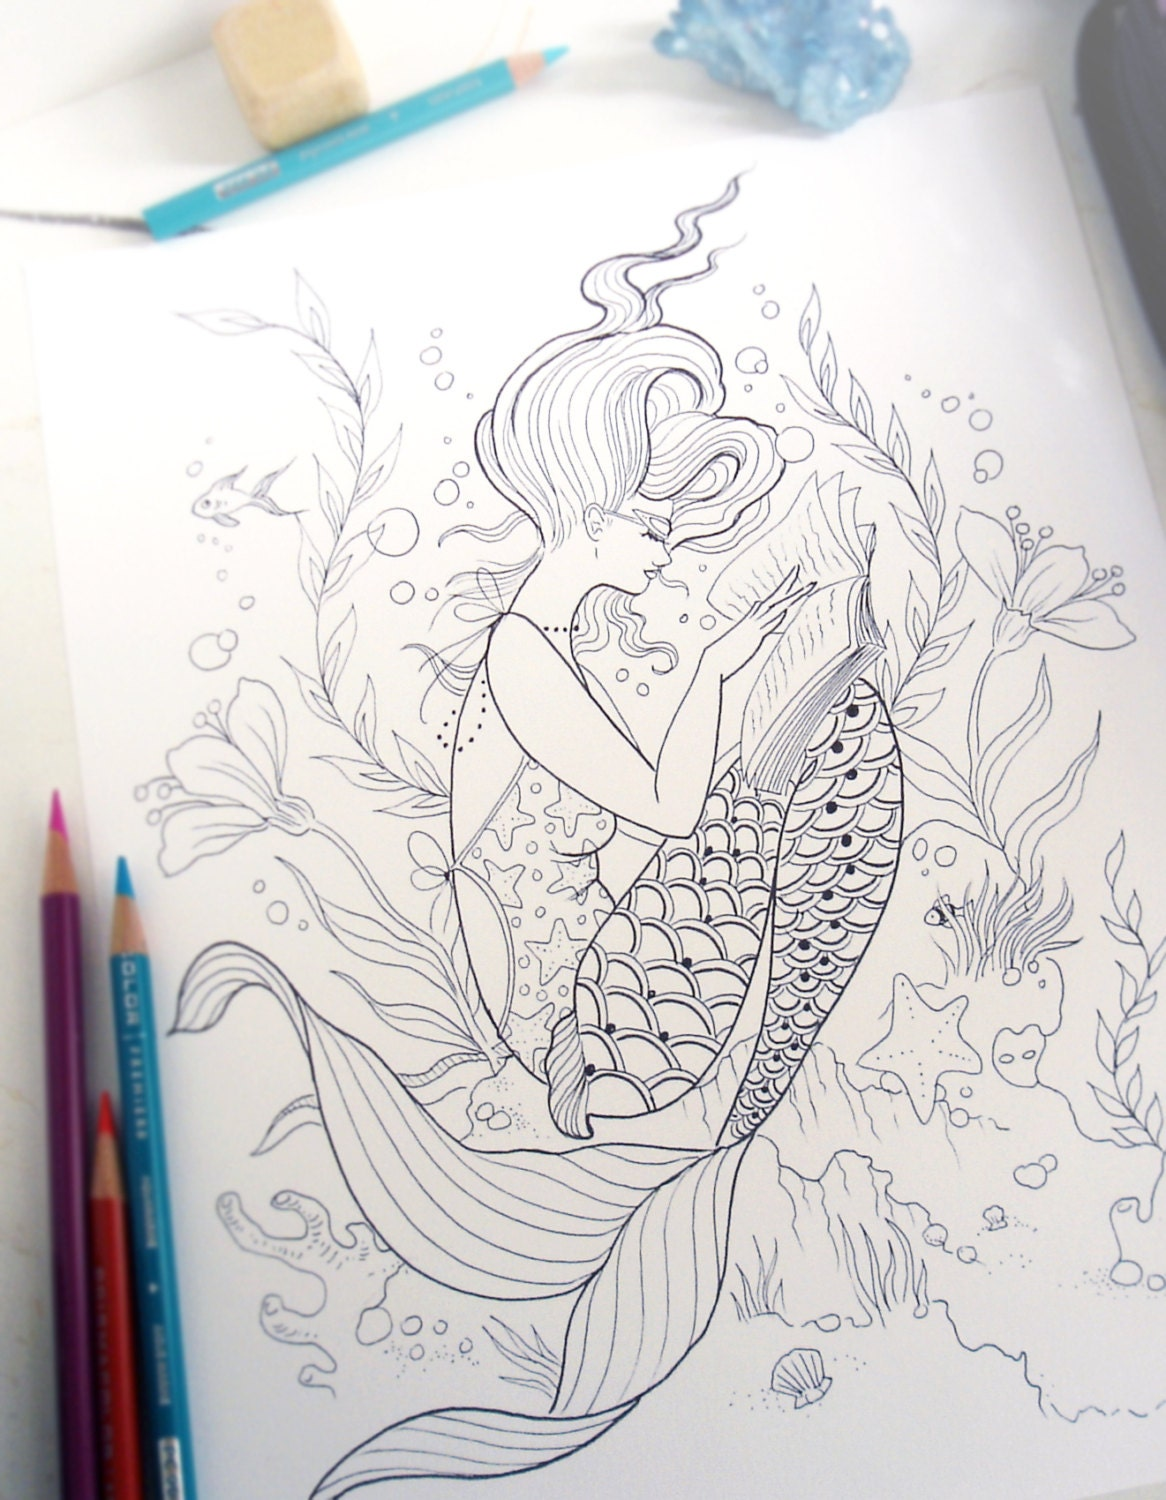 ariel little mermaid chatting with baby sea horses coloring page